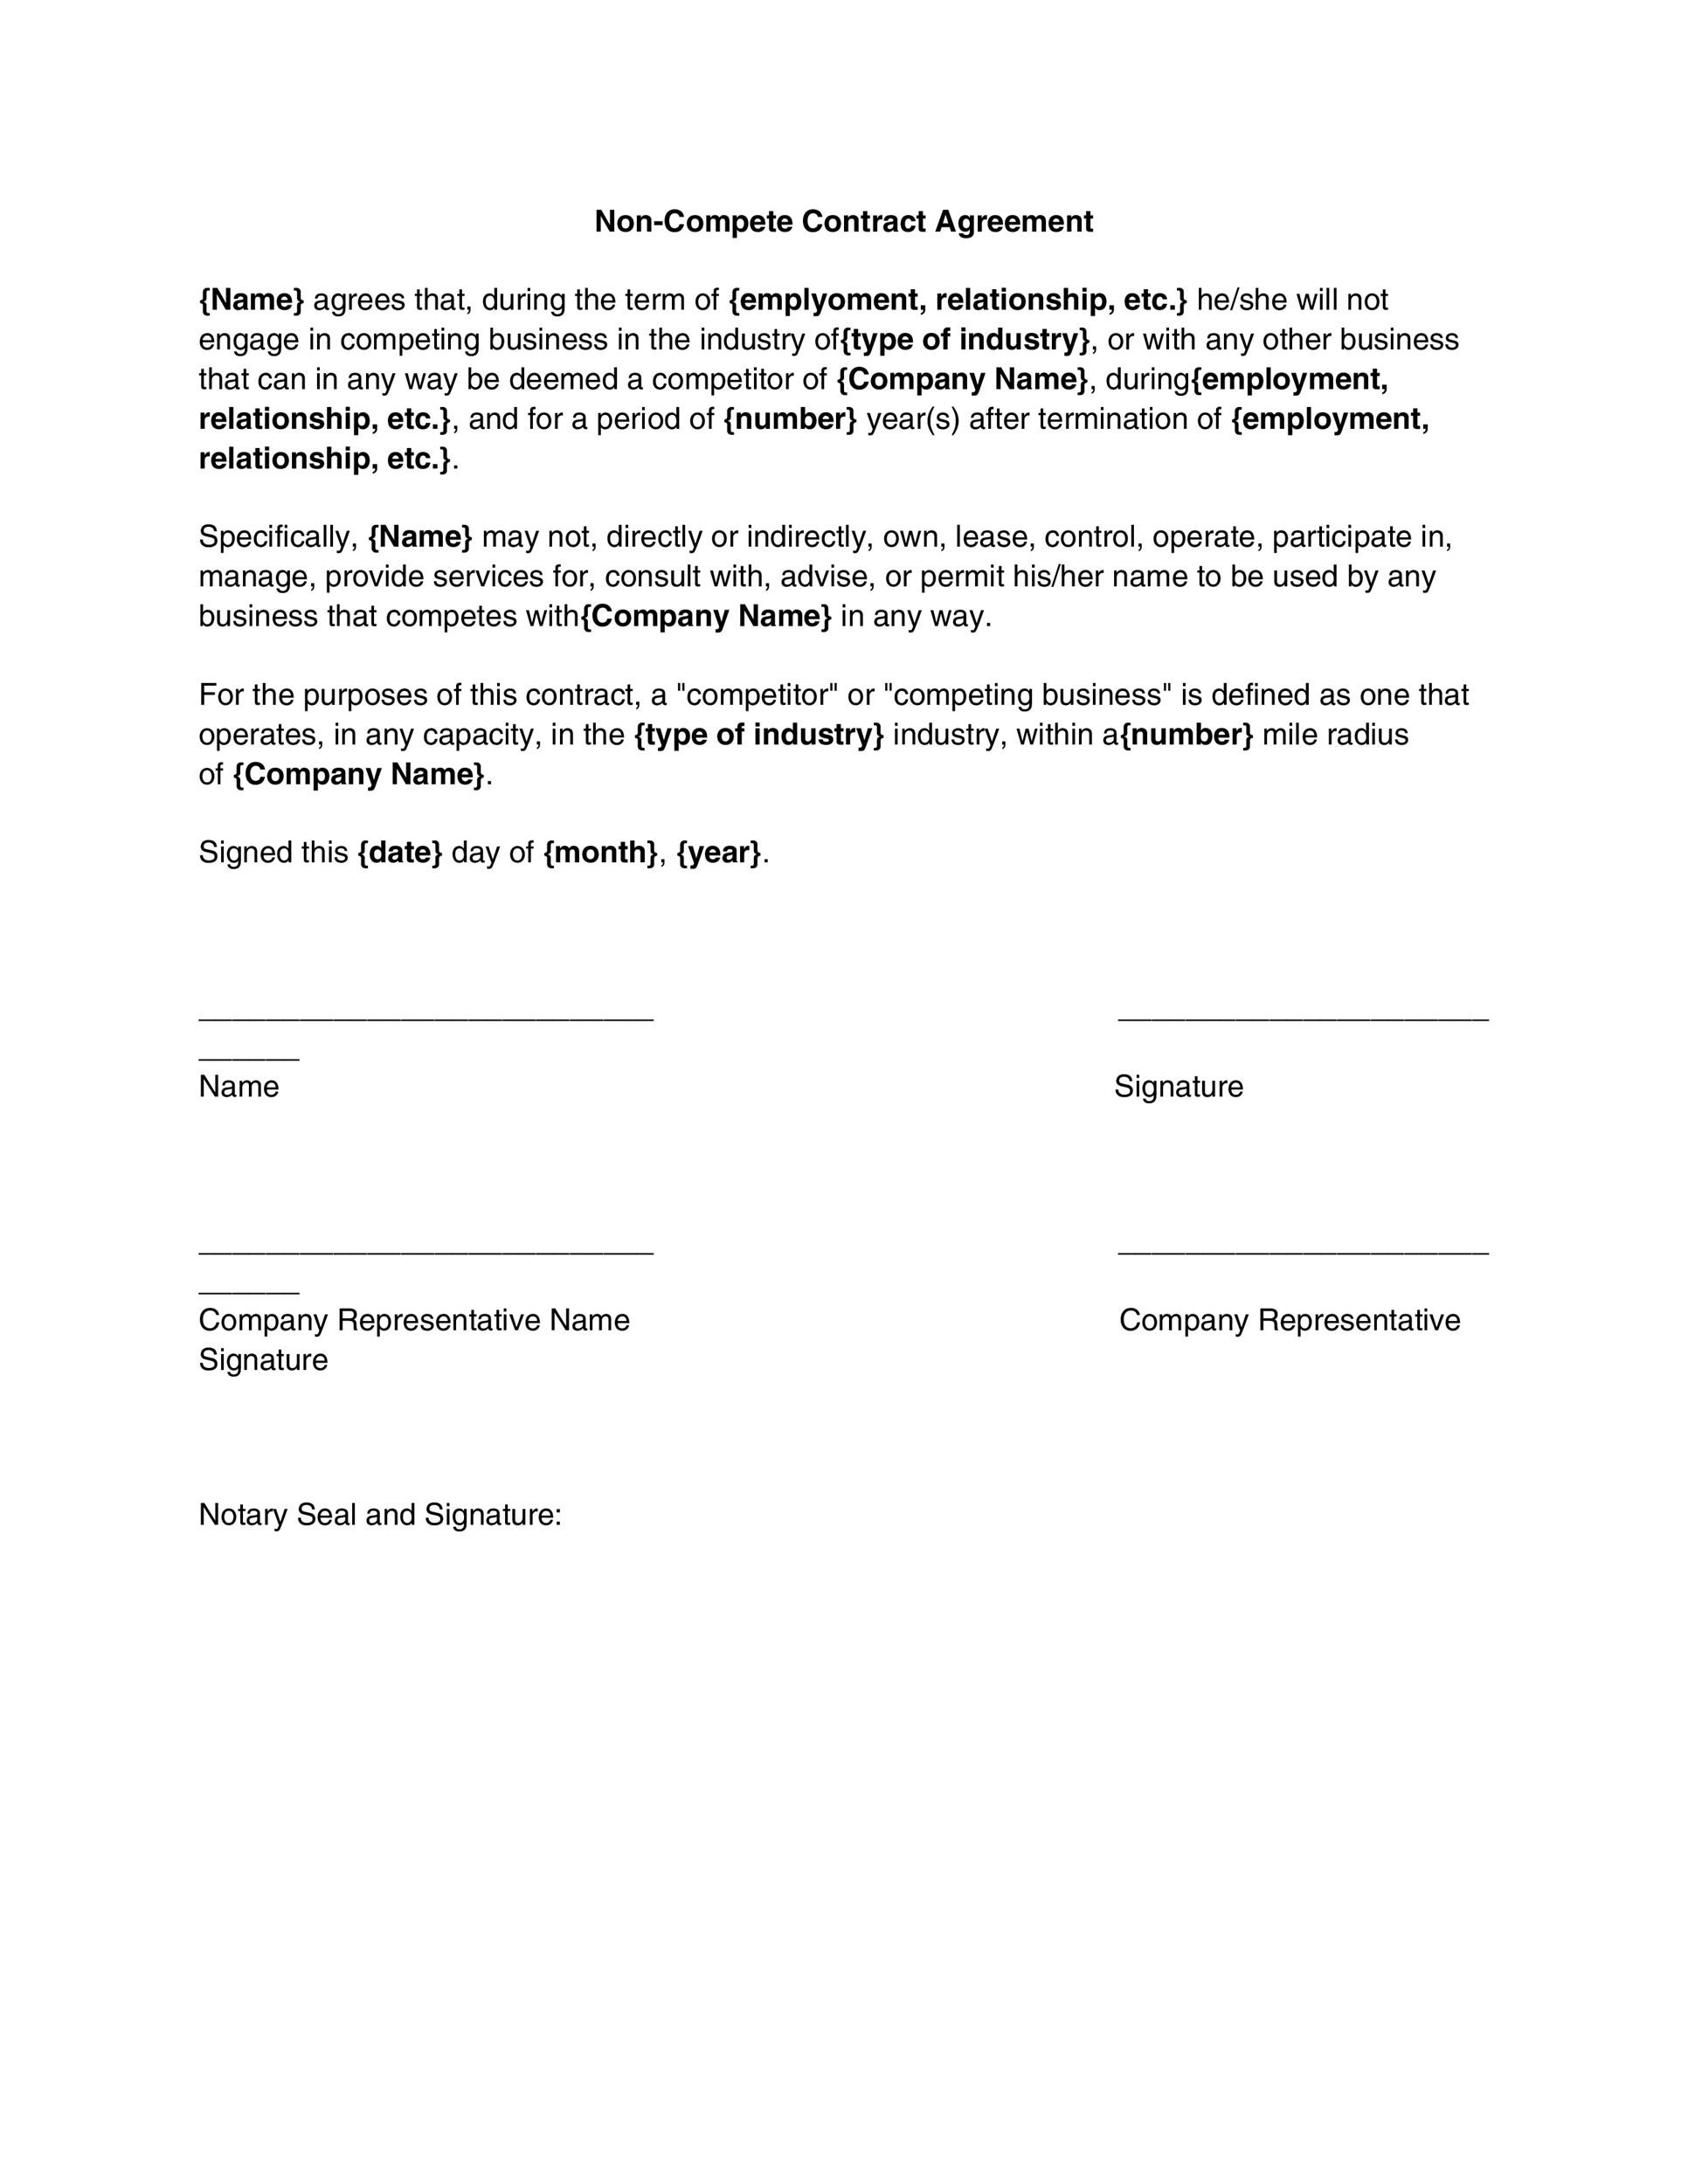 Non-Compete Agreement Template 04